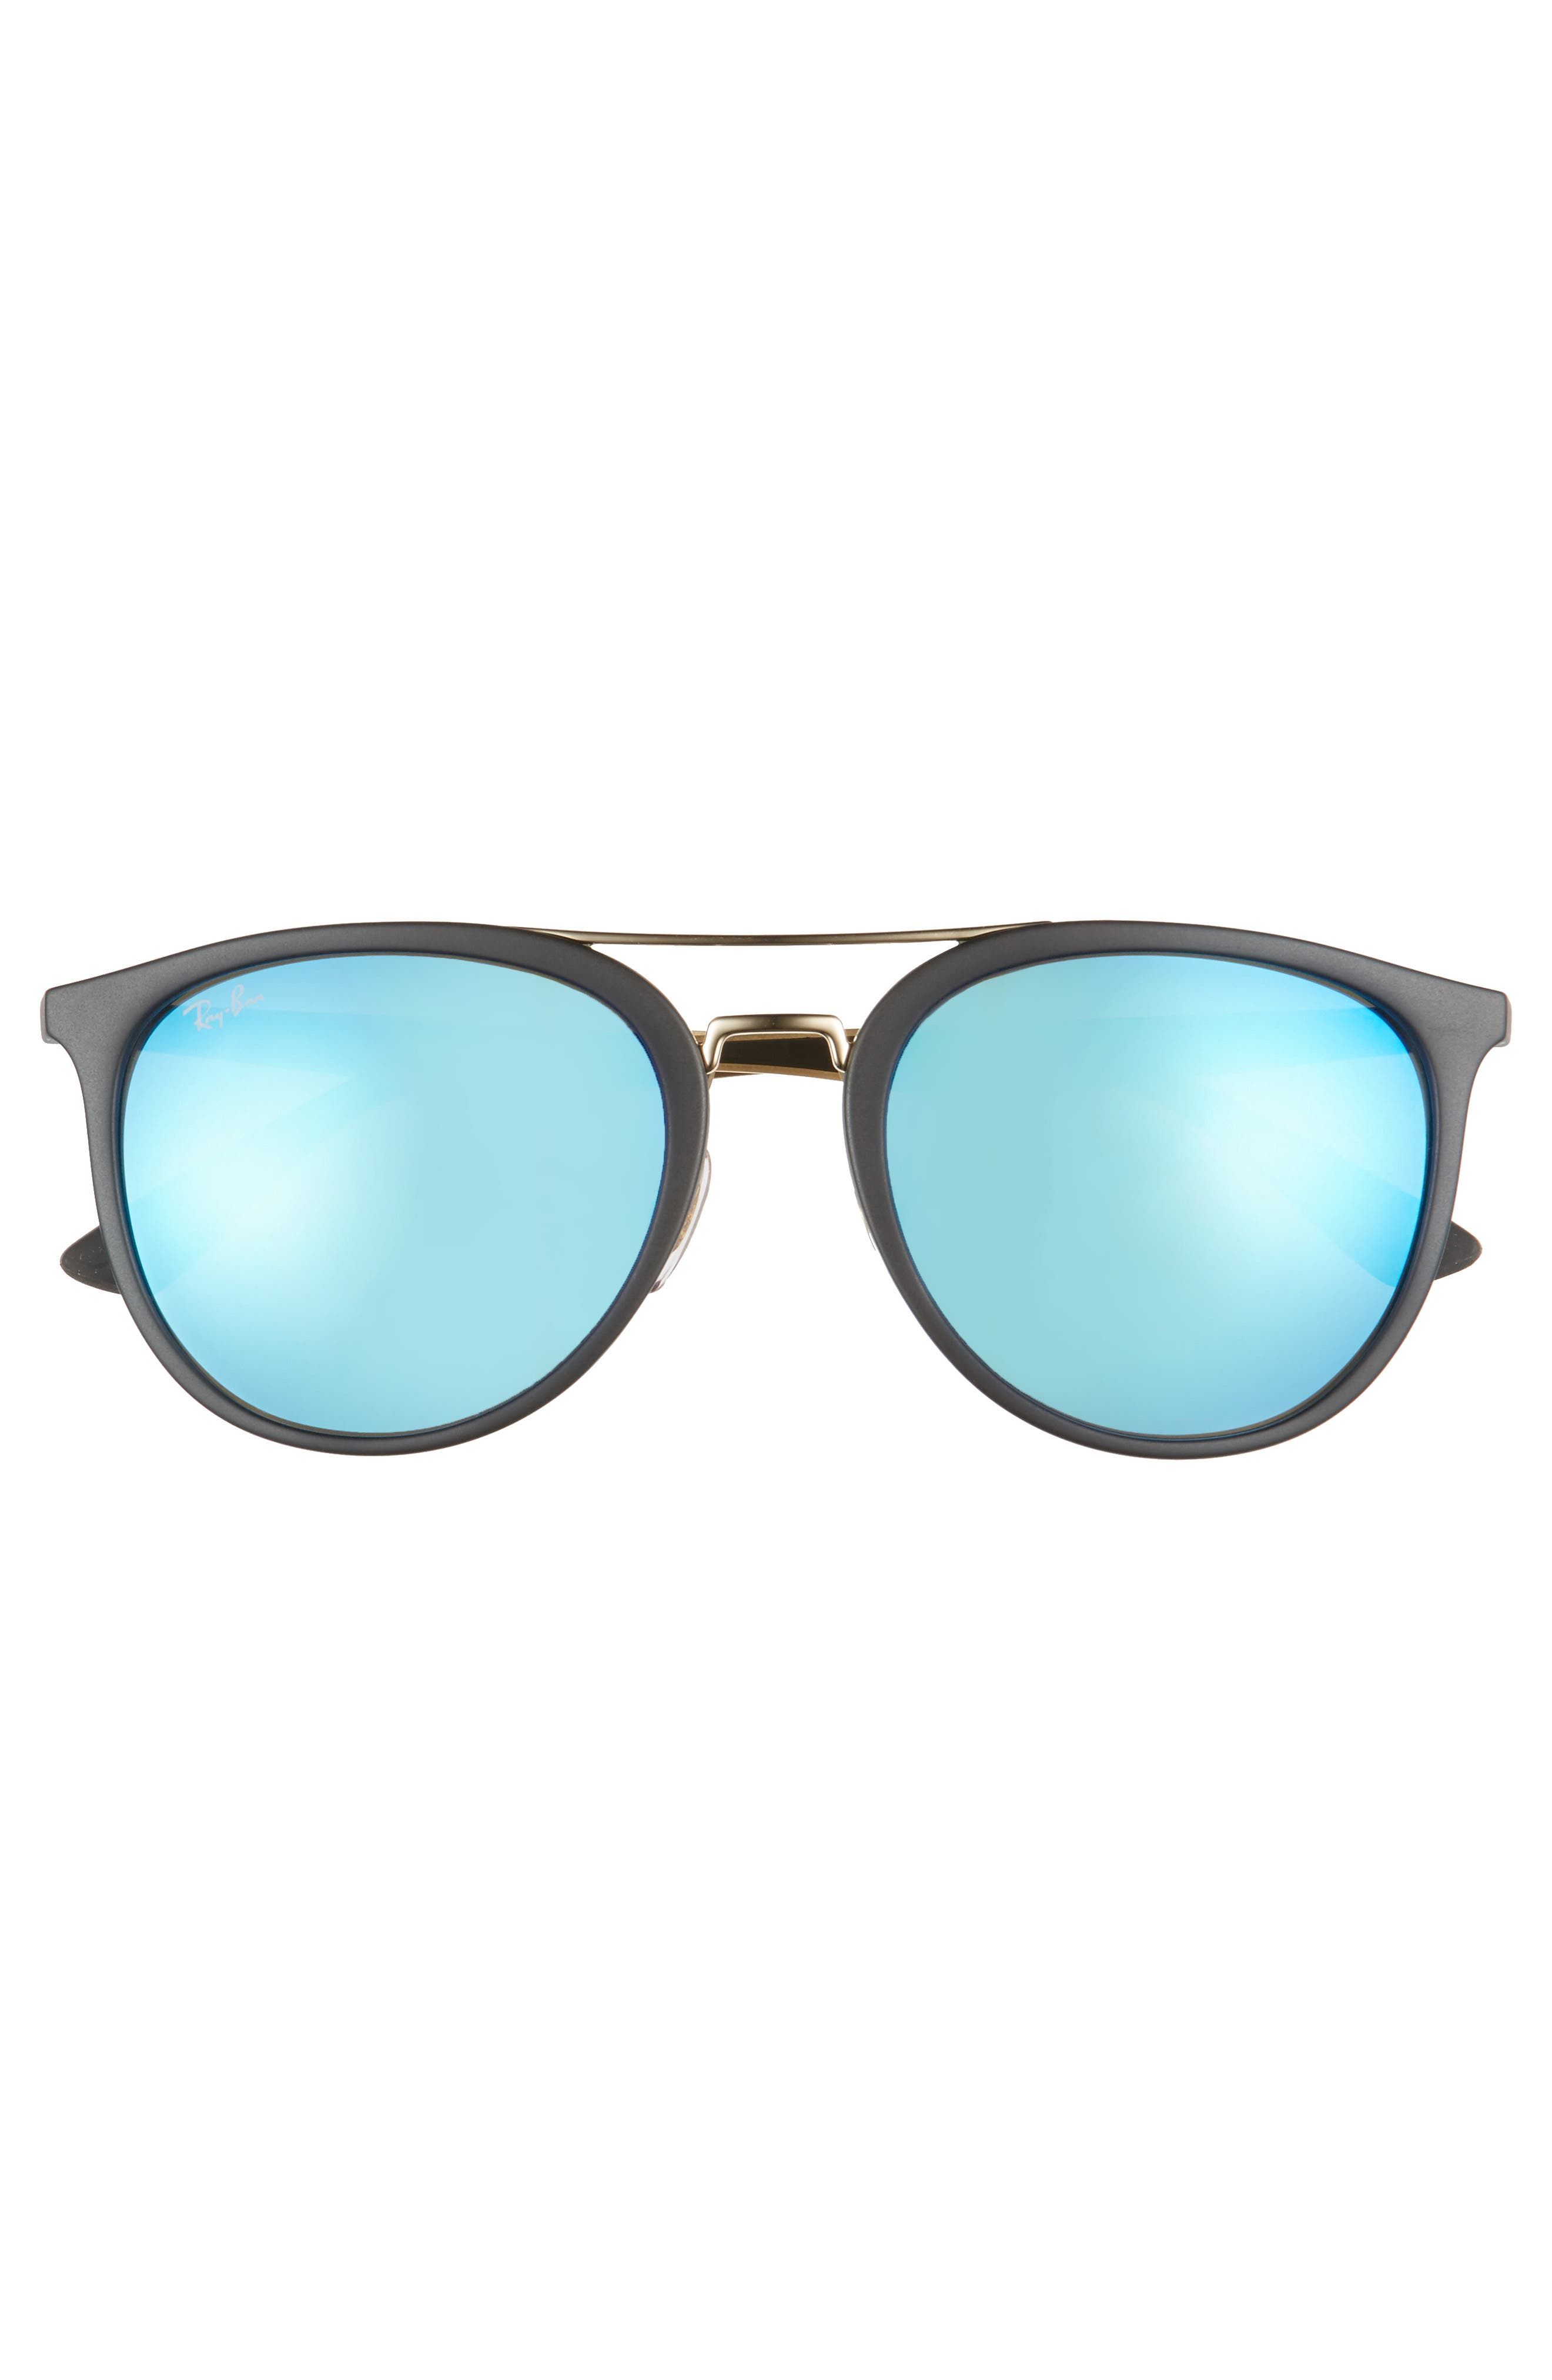 55mm Retro Sunglasses,                             Alternate thumbnail 2, color,